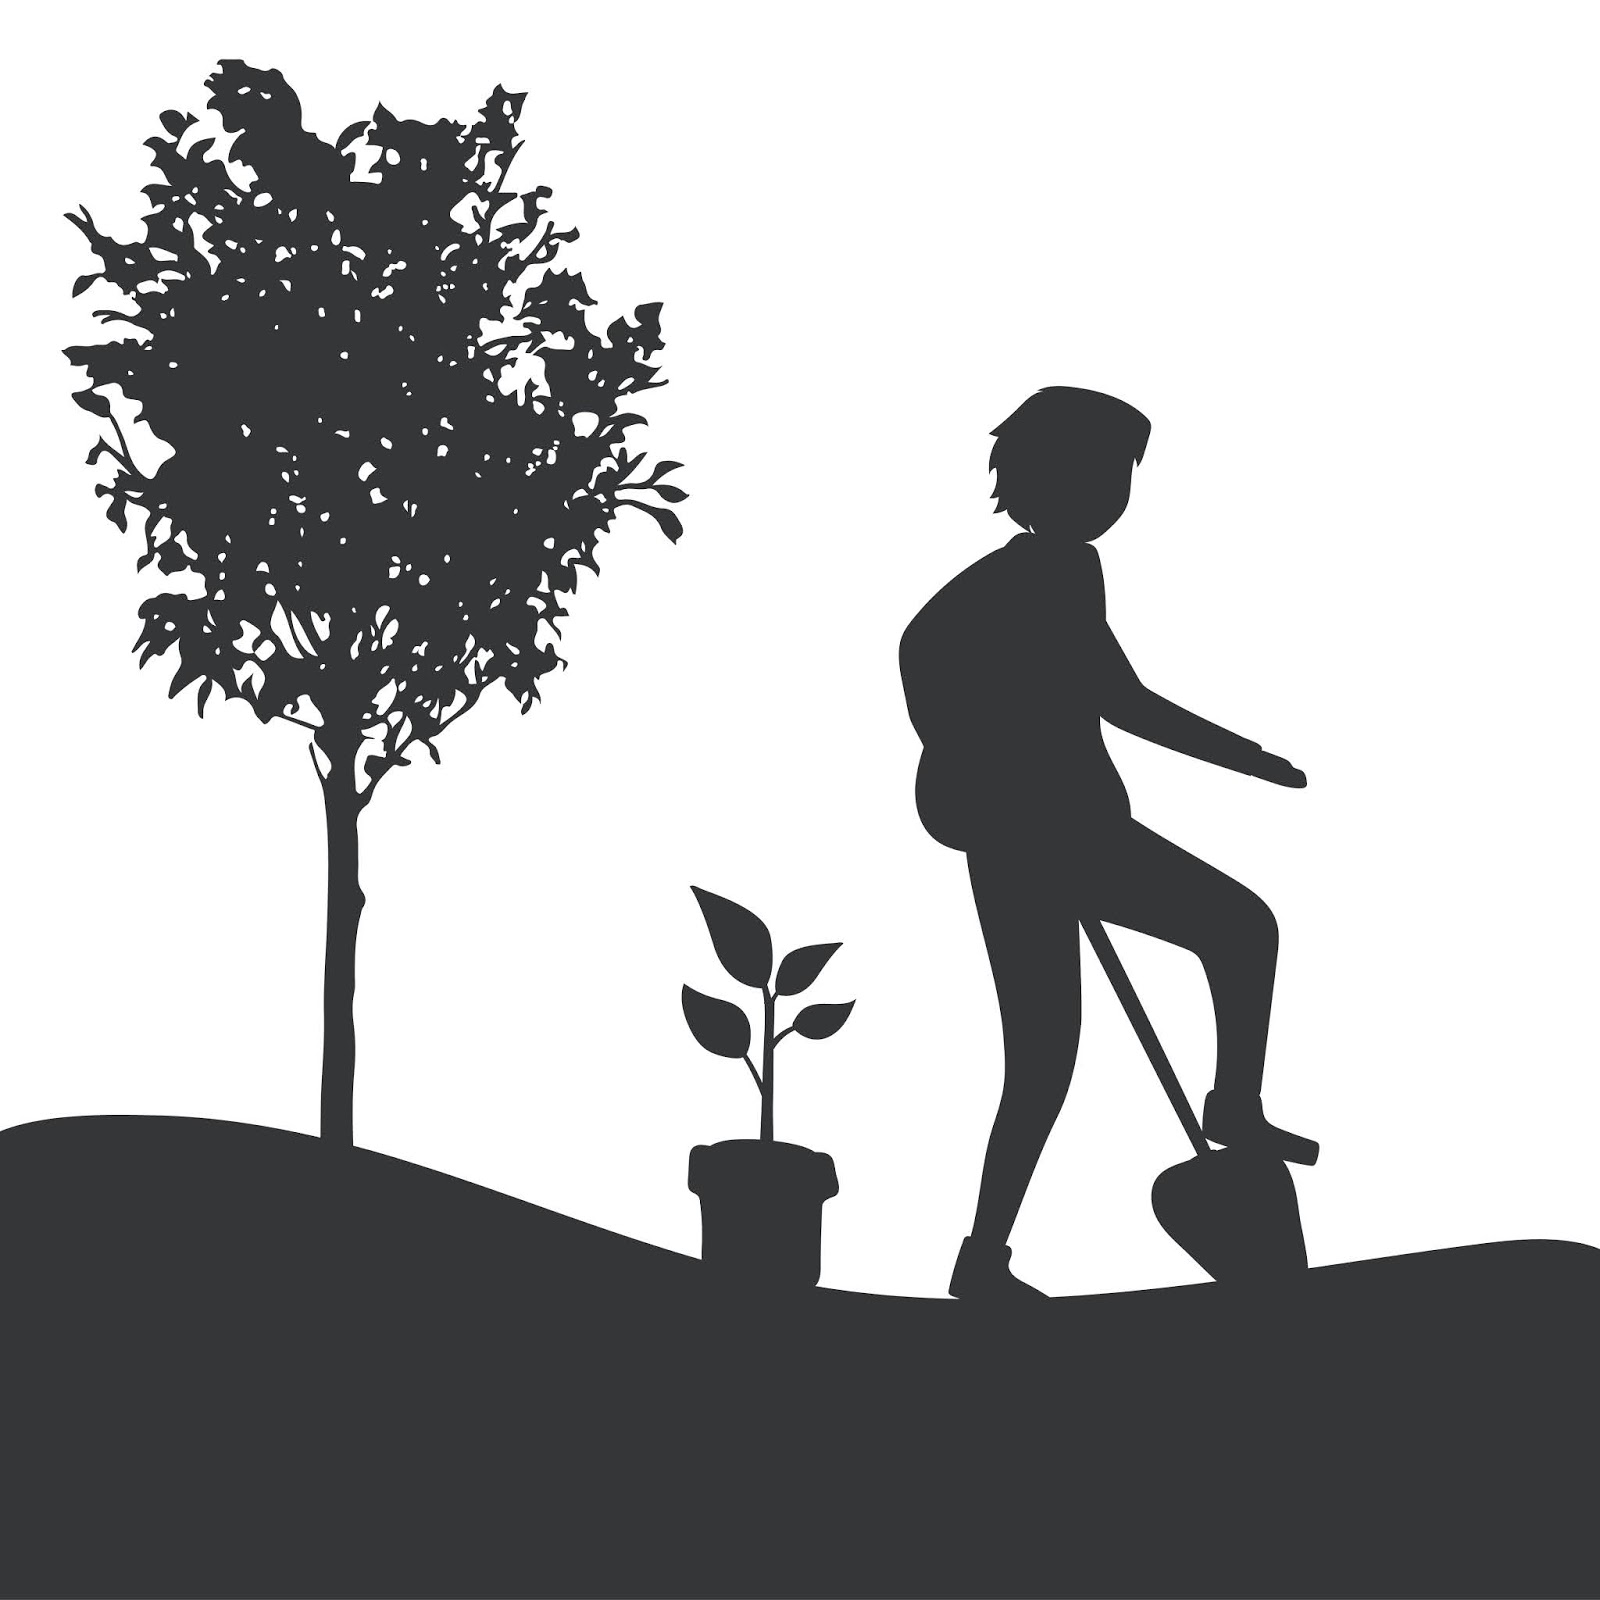 Silhouette Man Gardening Vector Free Download Vector CDR, AI, EPS and PNG Formats